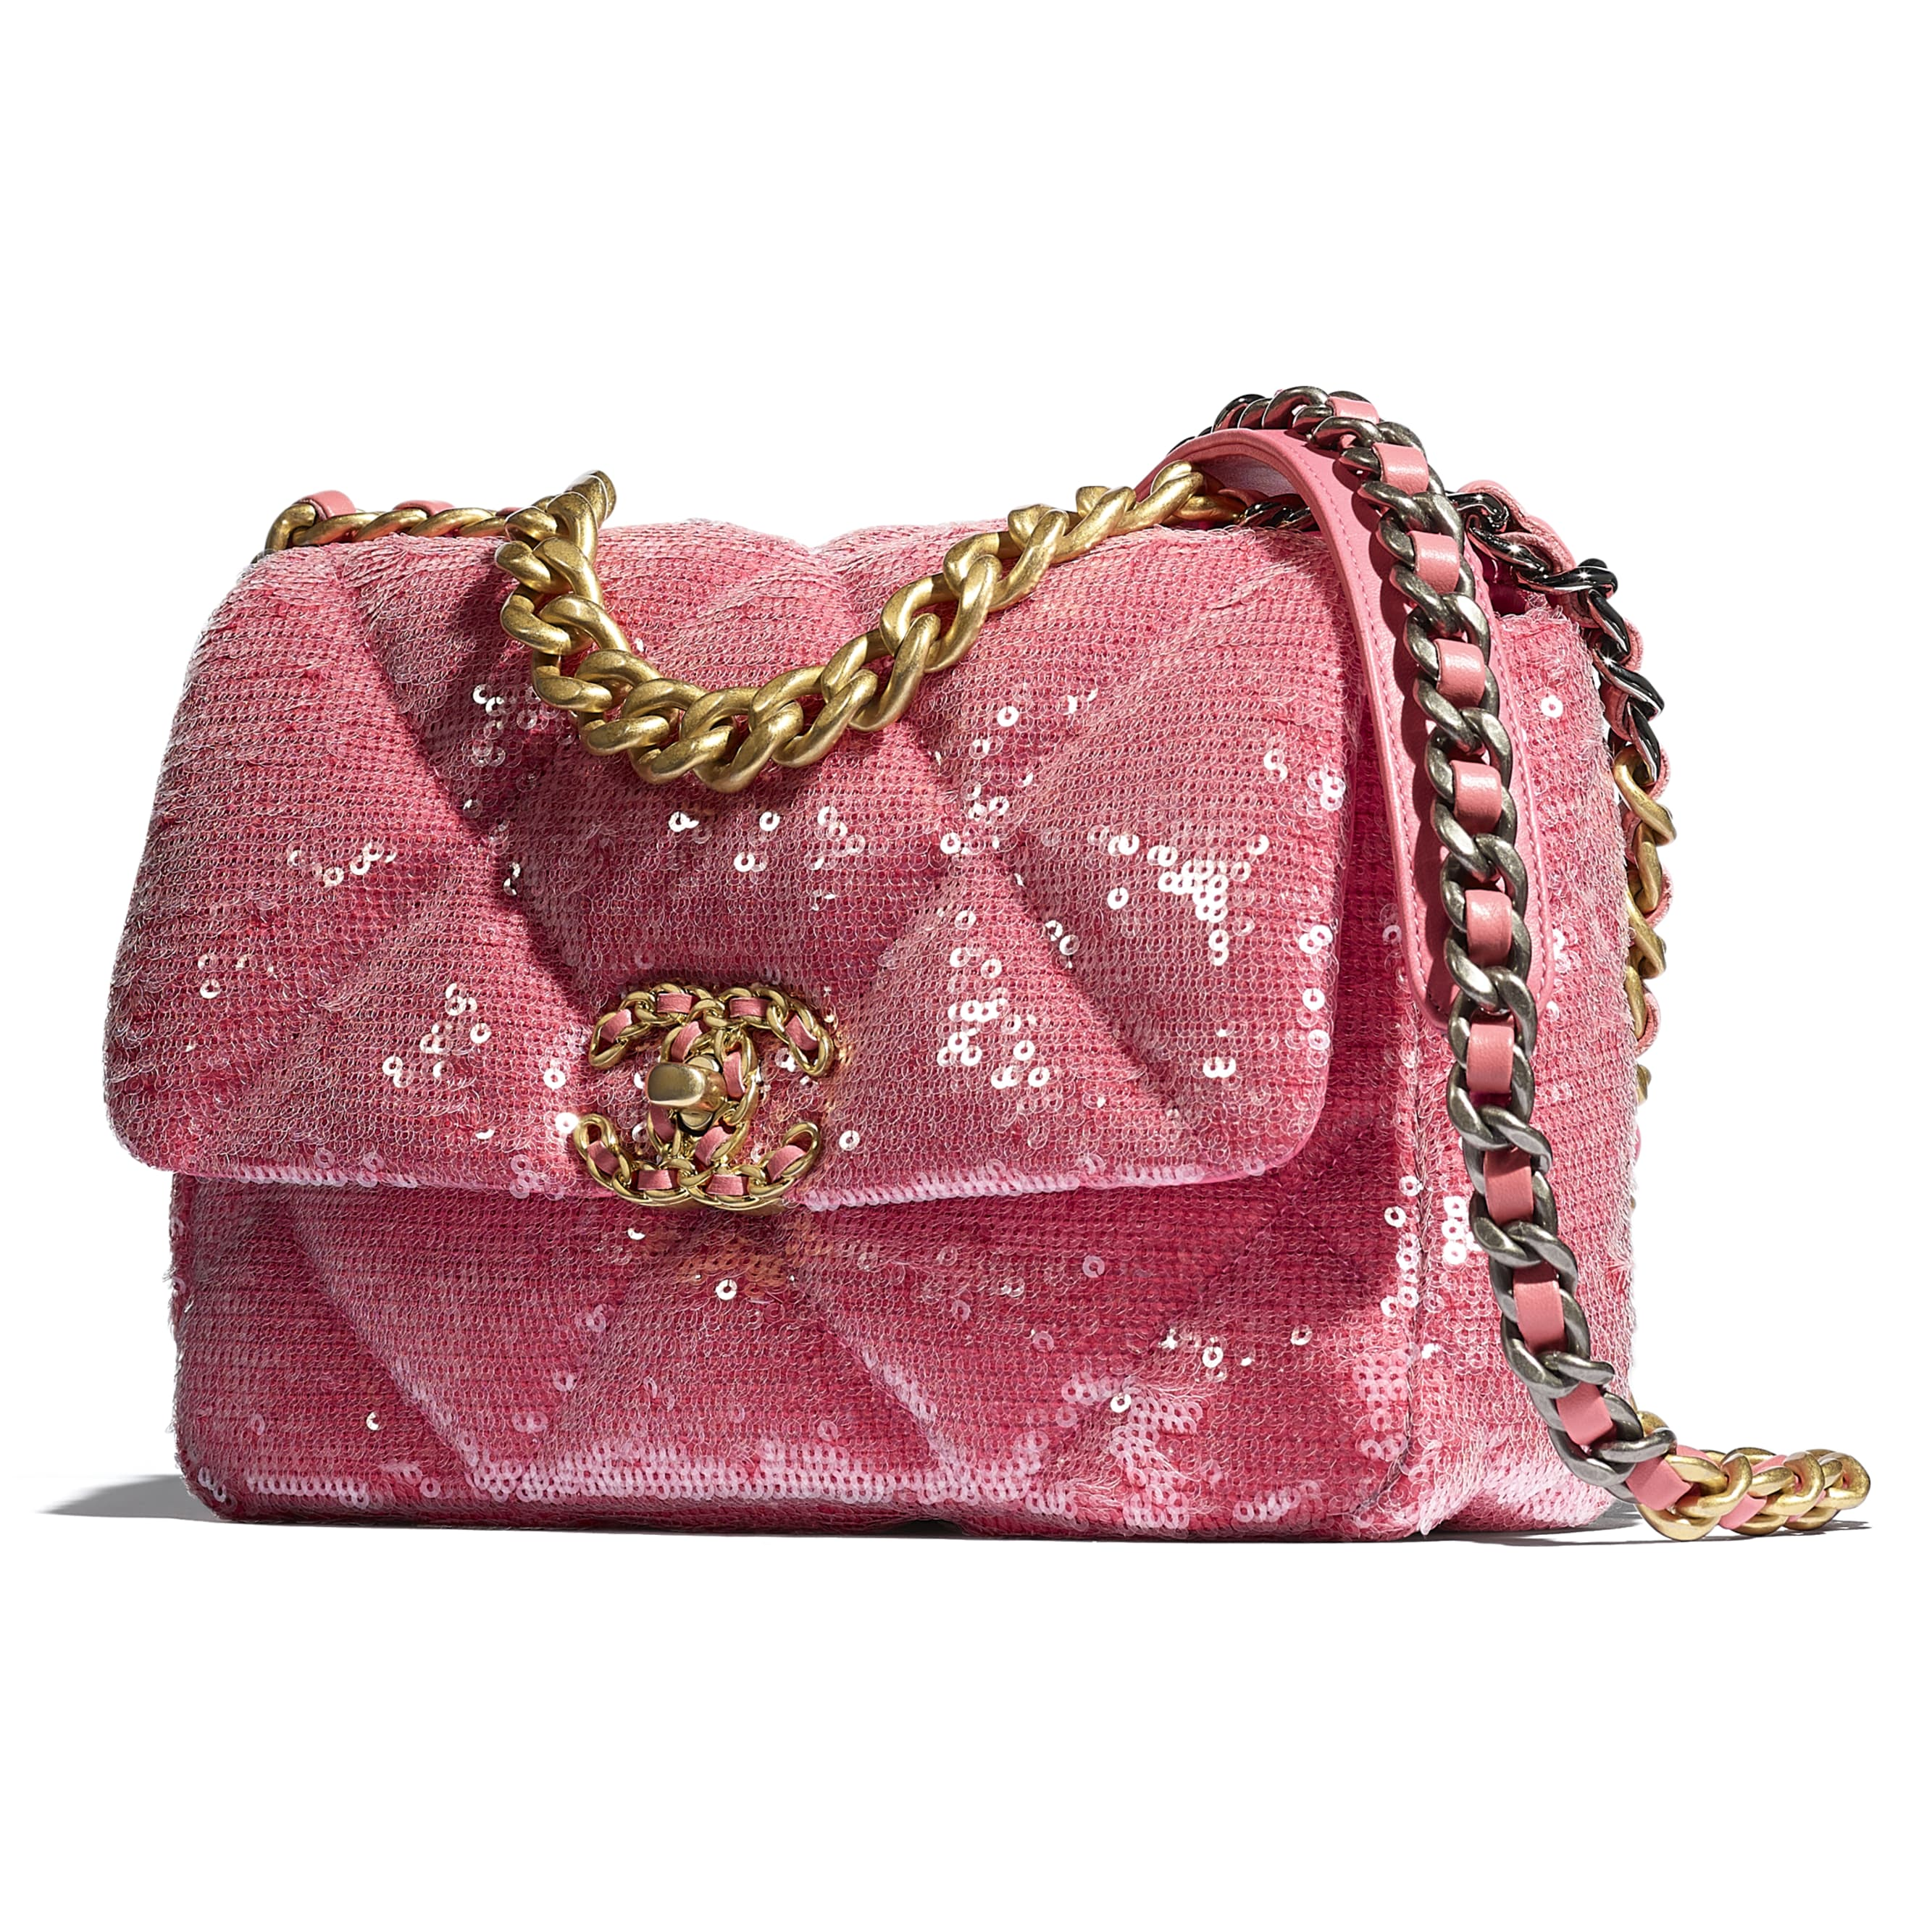 CHANEL 19 Handbag - Coral - Sequins, calfksin, silver-tone & gold-tone metal - CHANEL - Extra view - see standard sized version